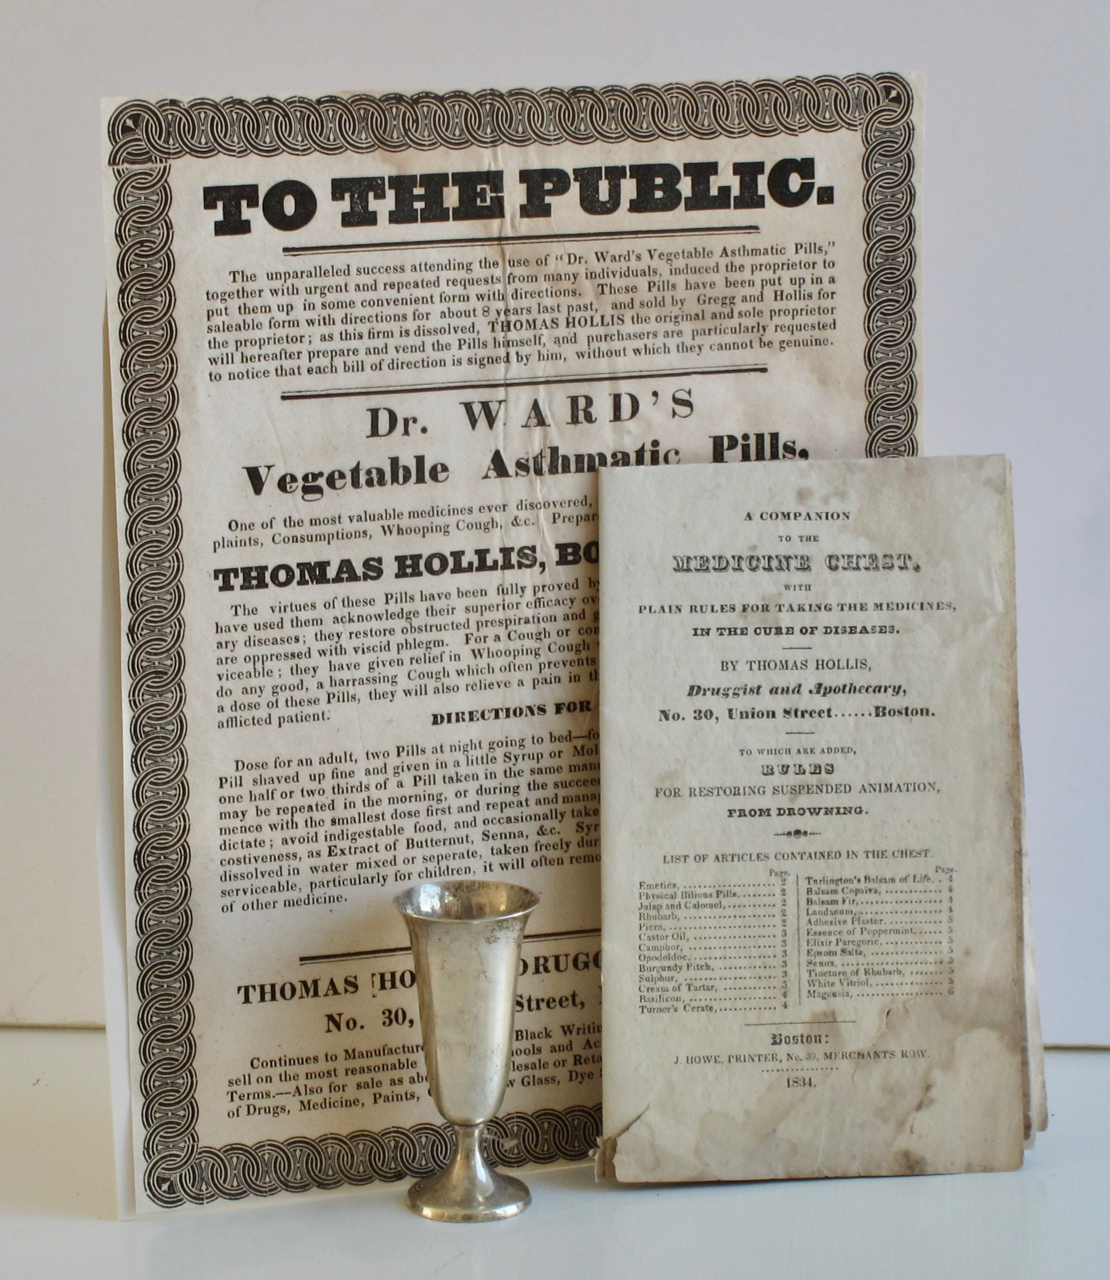 """A Companion to the Medicine Chest, with plain rules for taking the medicines in the cure of diseases. By Thomas Hollis... to which are added rules for restoring suspended animation, from drowning. [WITH:] To the Public. The unparalleled success attending the use of Dr. Ward's Vegetable Asthmatic Pills. """" ... induced the proprietor to put them up in some convenient form with directions …"""" Thomas Patent Medicine – Hollis."""